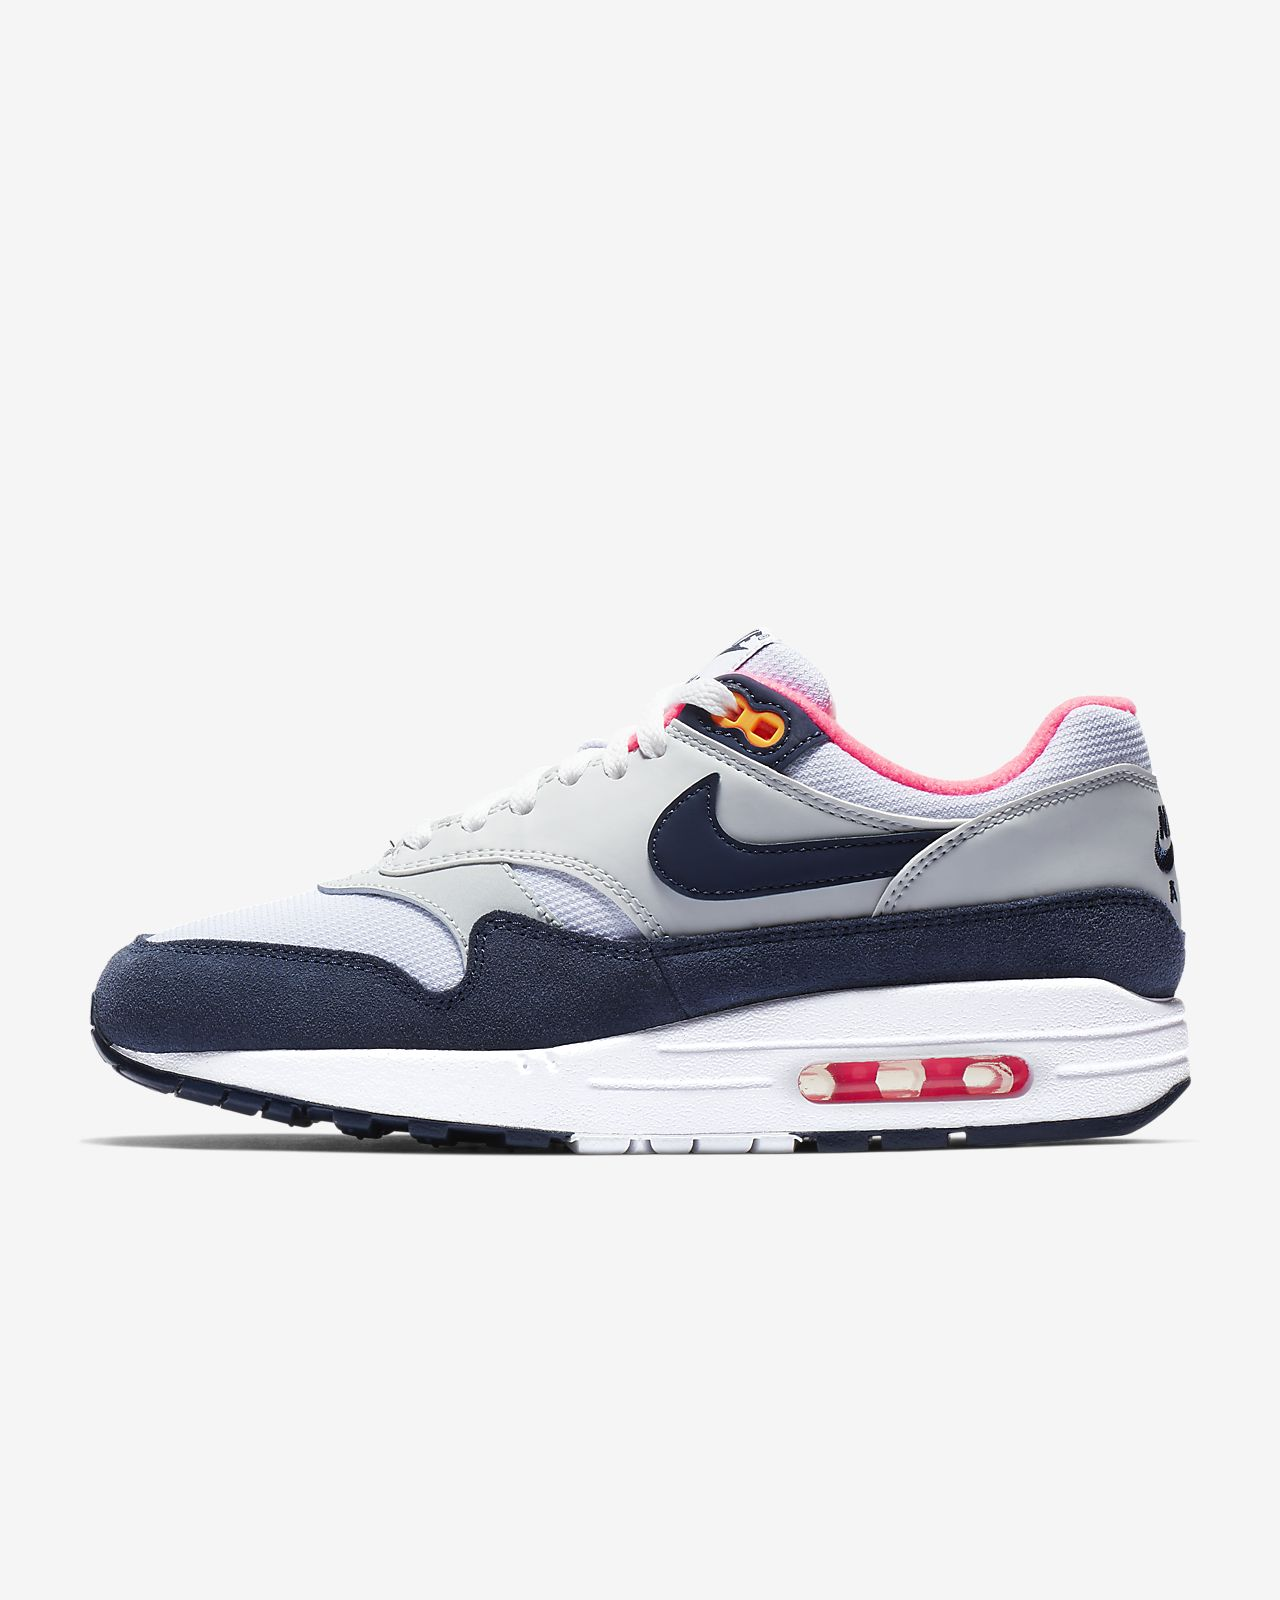 timeless design 3c1ea a372f ... Nike Air Max 1 Premium Womens Shoe